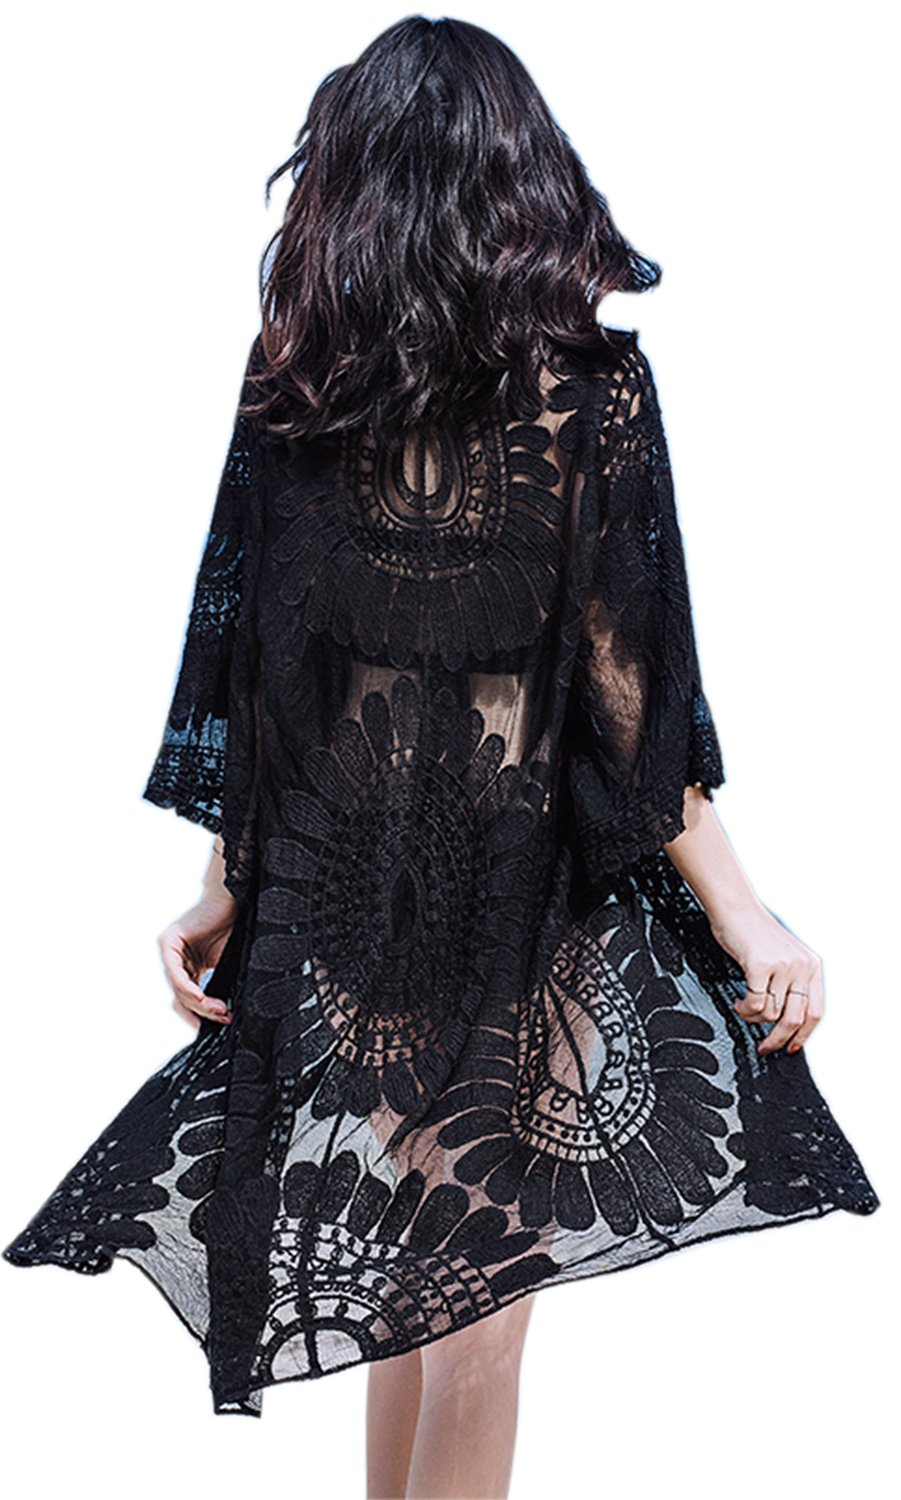 VenuStar Womens Beach Cover komino Cover up Long Black Cardigans Flowy Embroidered Lace with Half Sleeves (One Size, Y-Black)